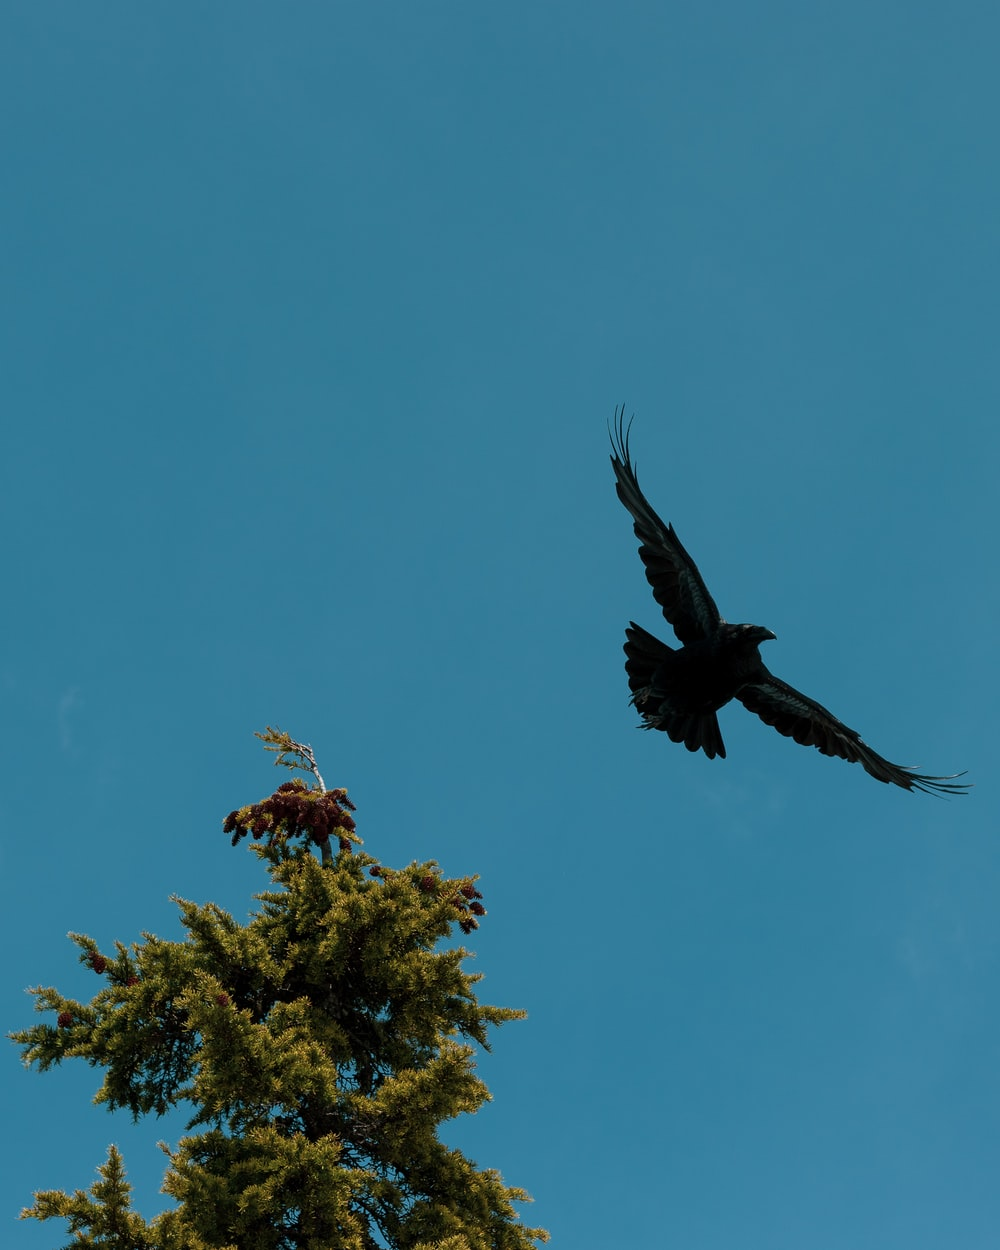 black eagle flying near tree